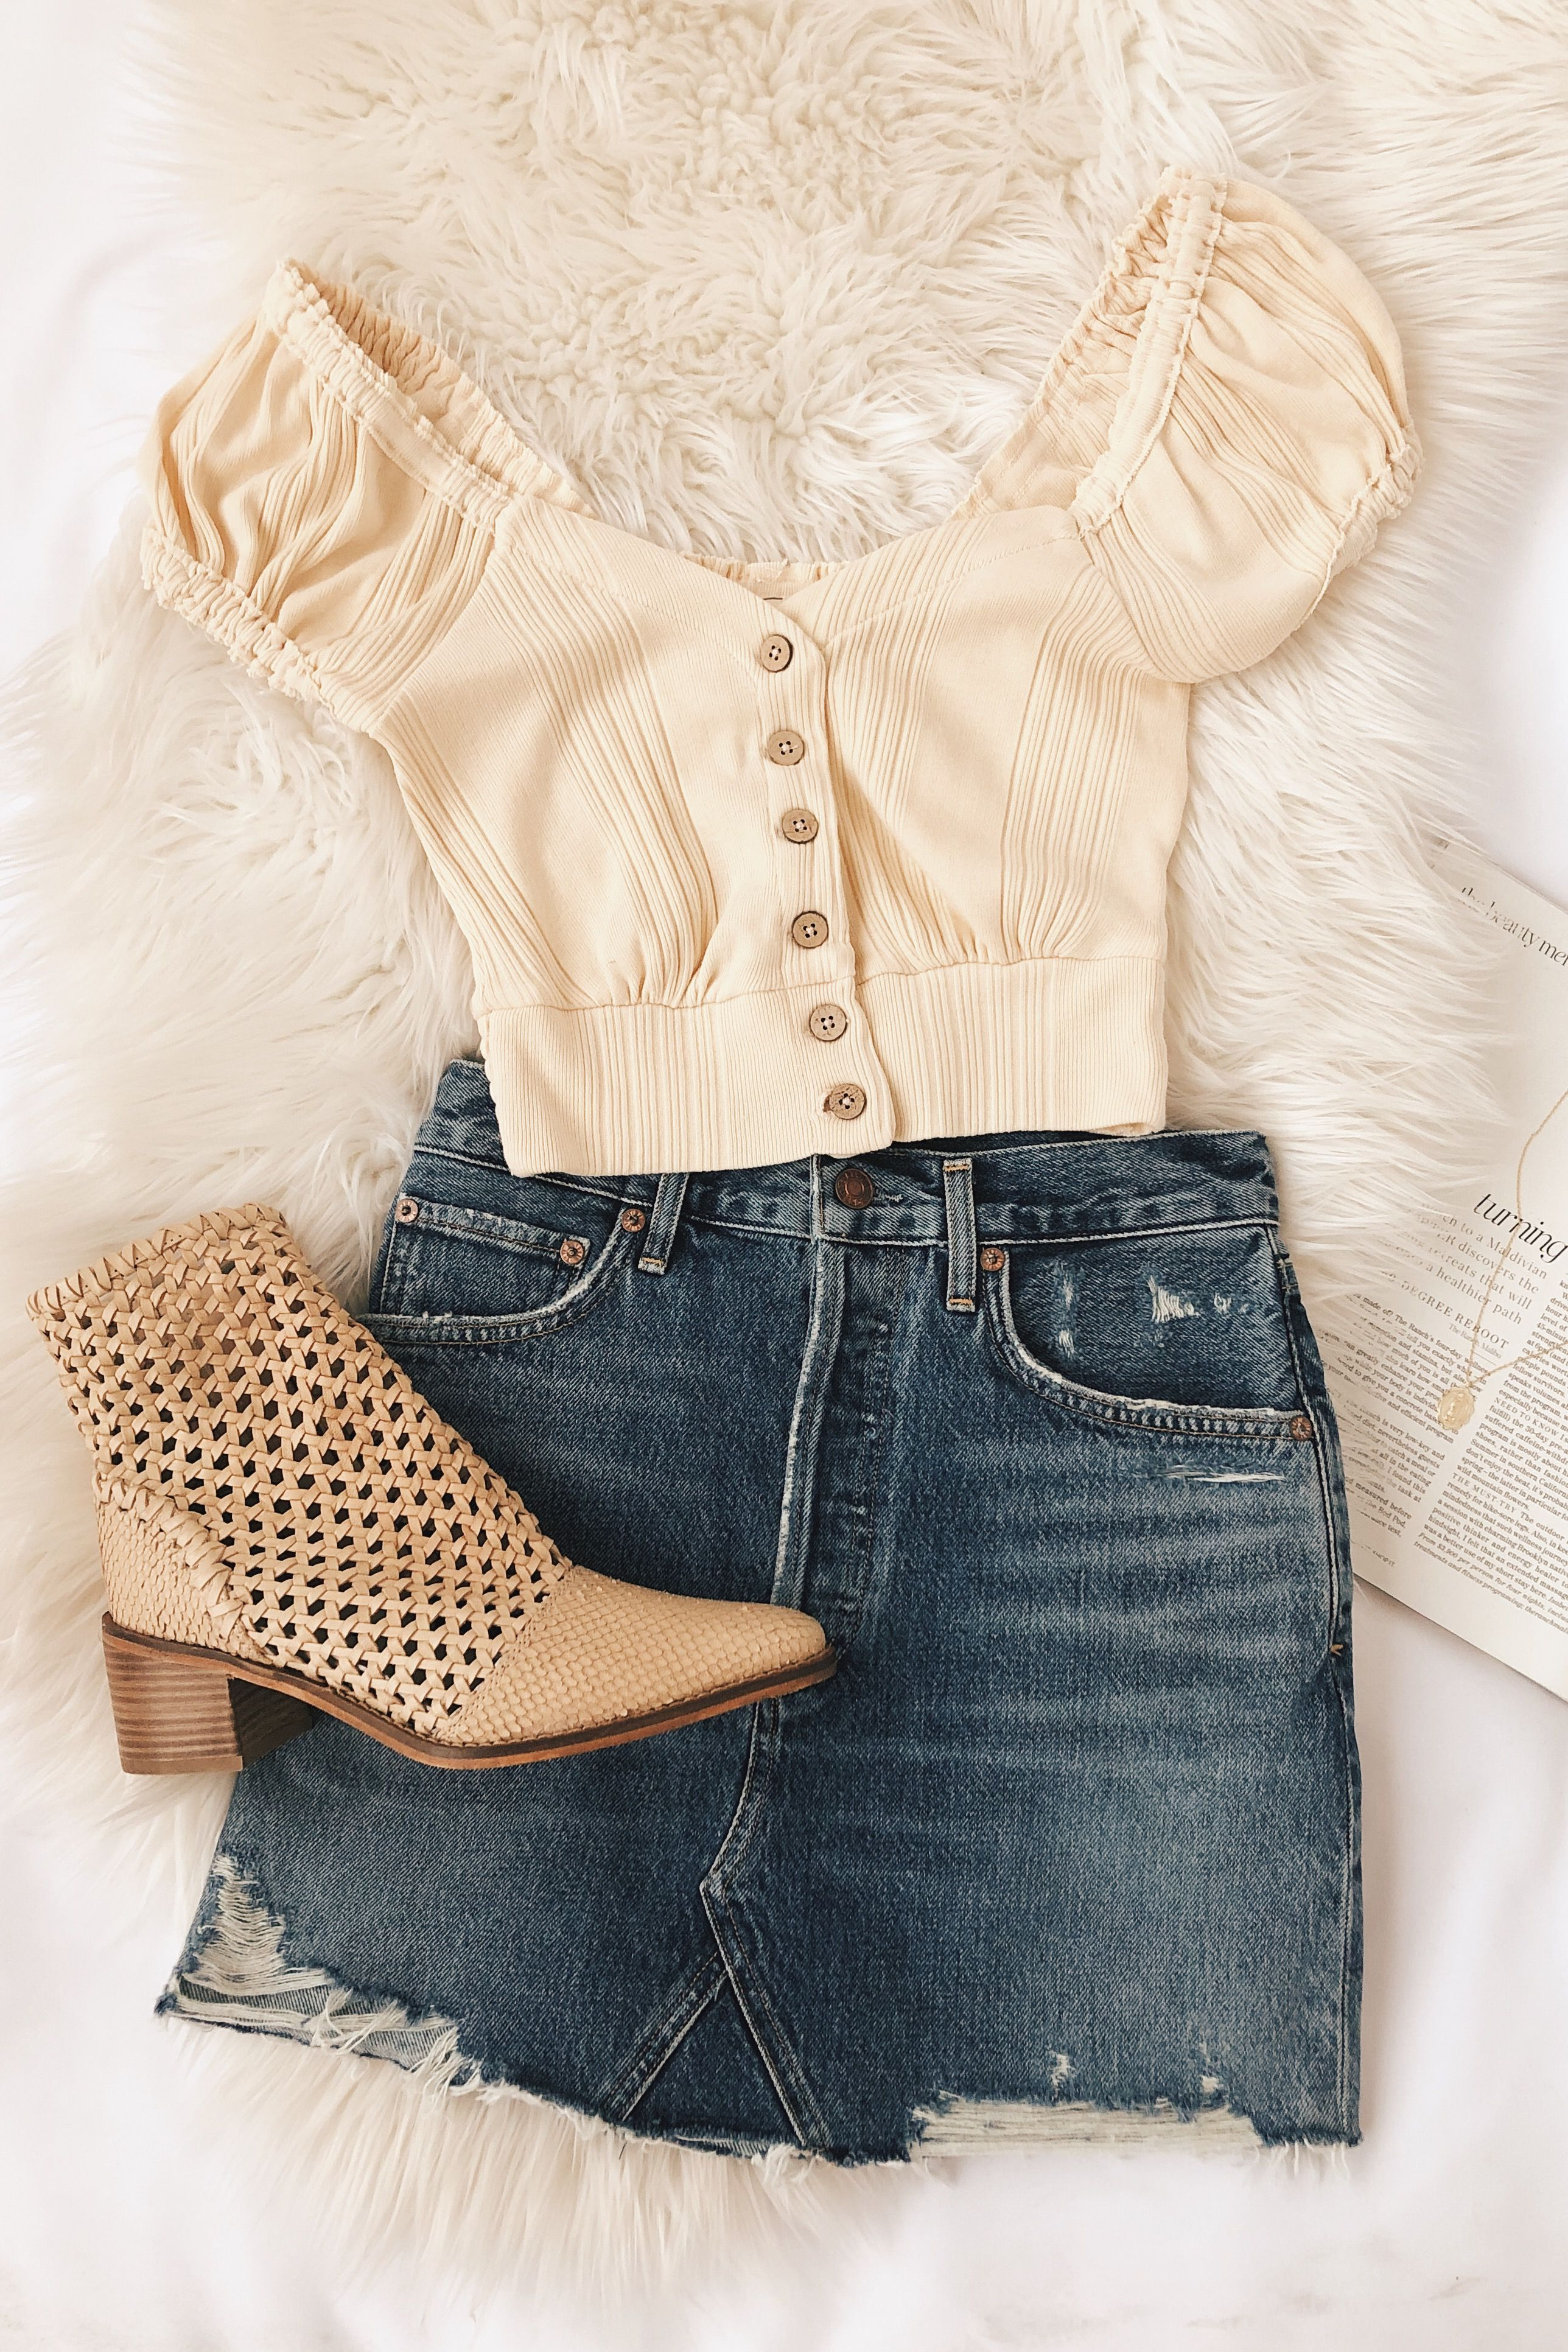 a96989938bc1 Cute spring outfit.  croptop  springfashion  outfitinspo  denimskirt   ankleboot  lovelulus